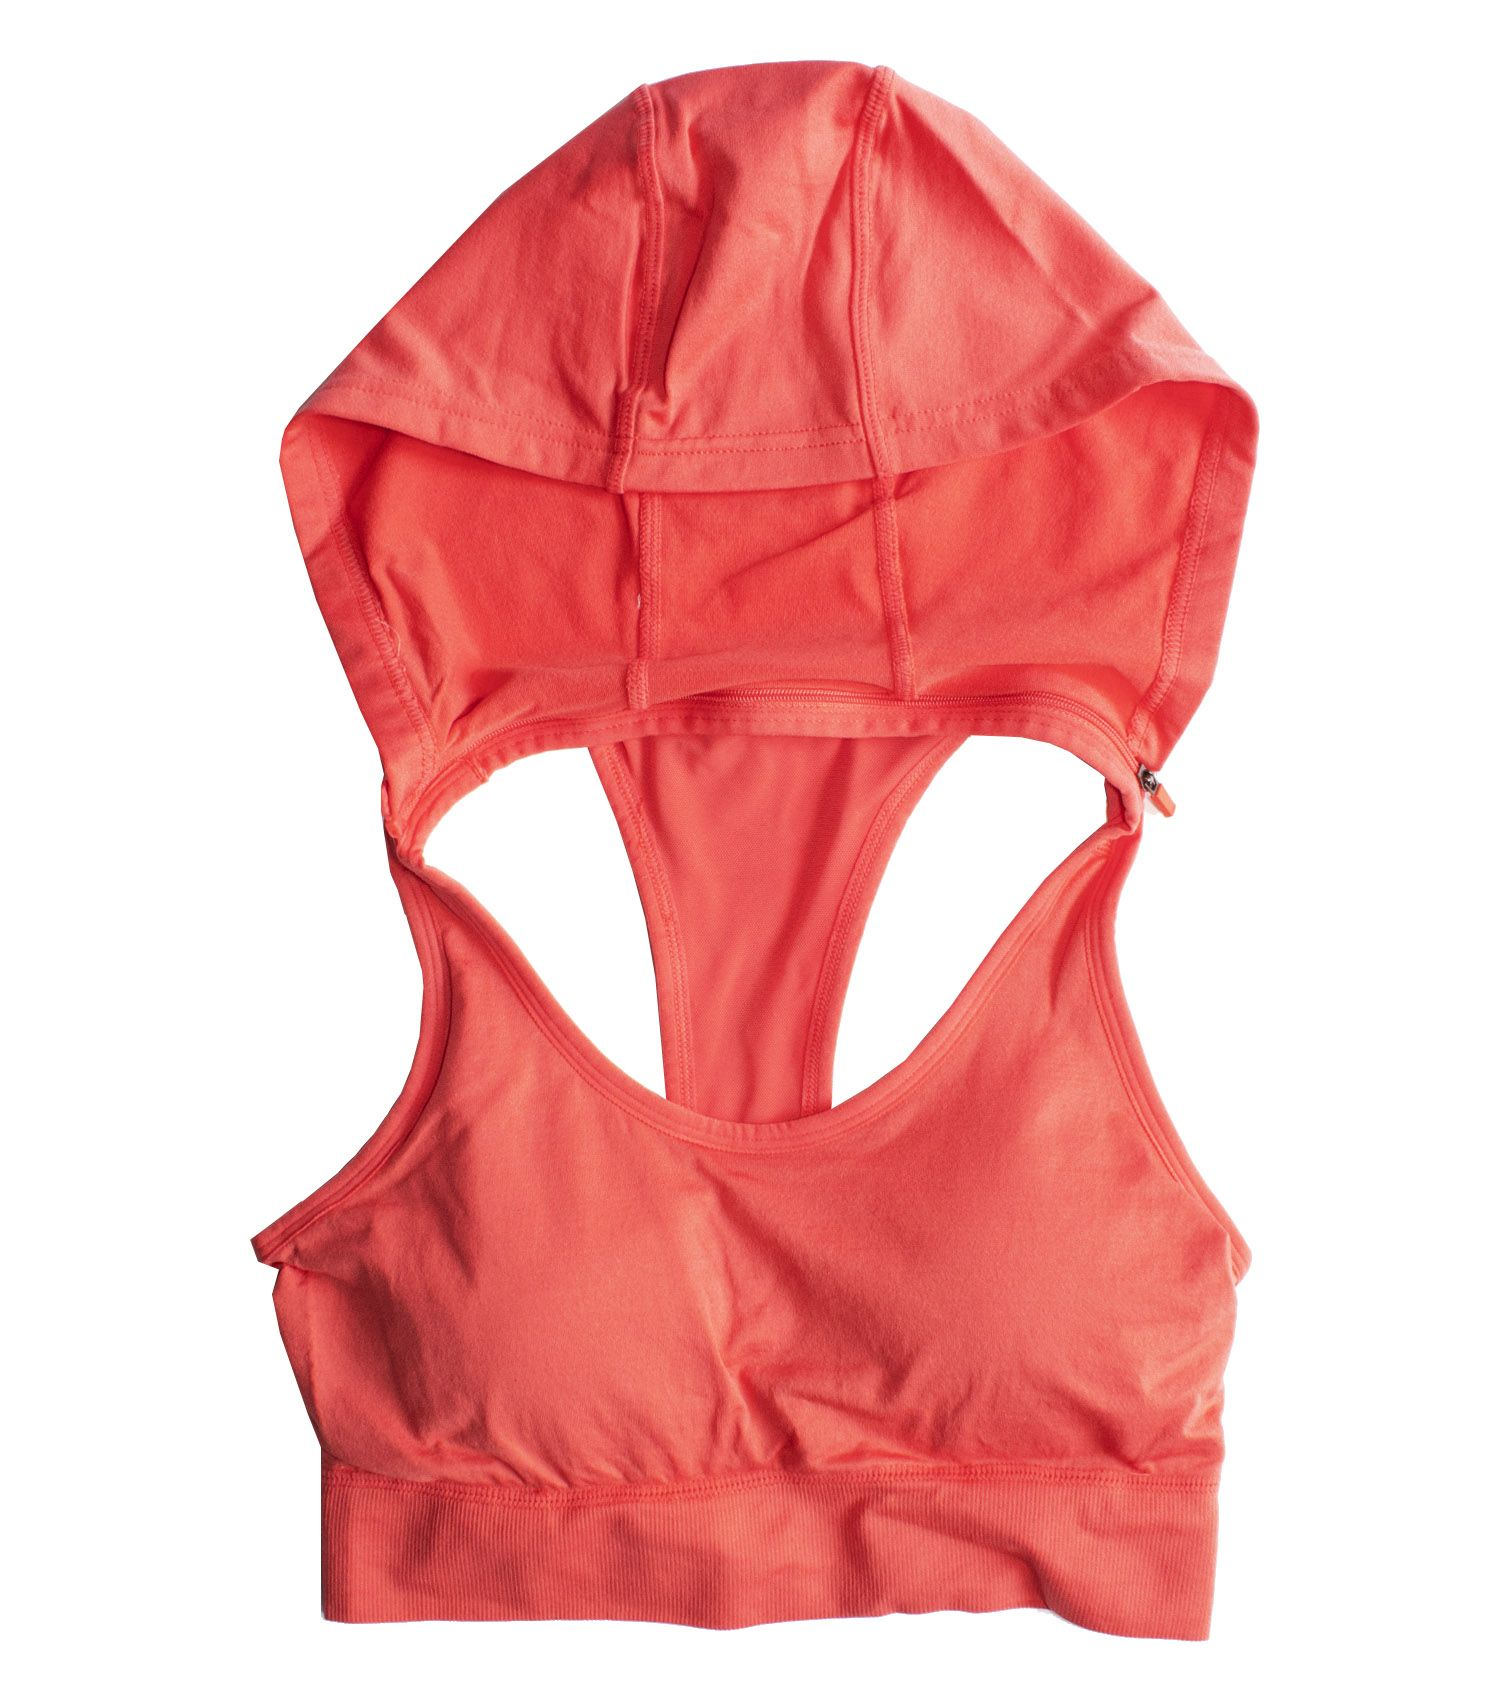 aa4fa15c7cf Throw a long sleeve over our sports bra hoodie for a not so hot morning  run. Did we mention the detachable hood   sportsbra  hoodie  fallfashion   stayfit ...